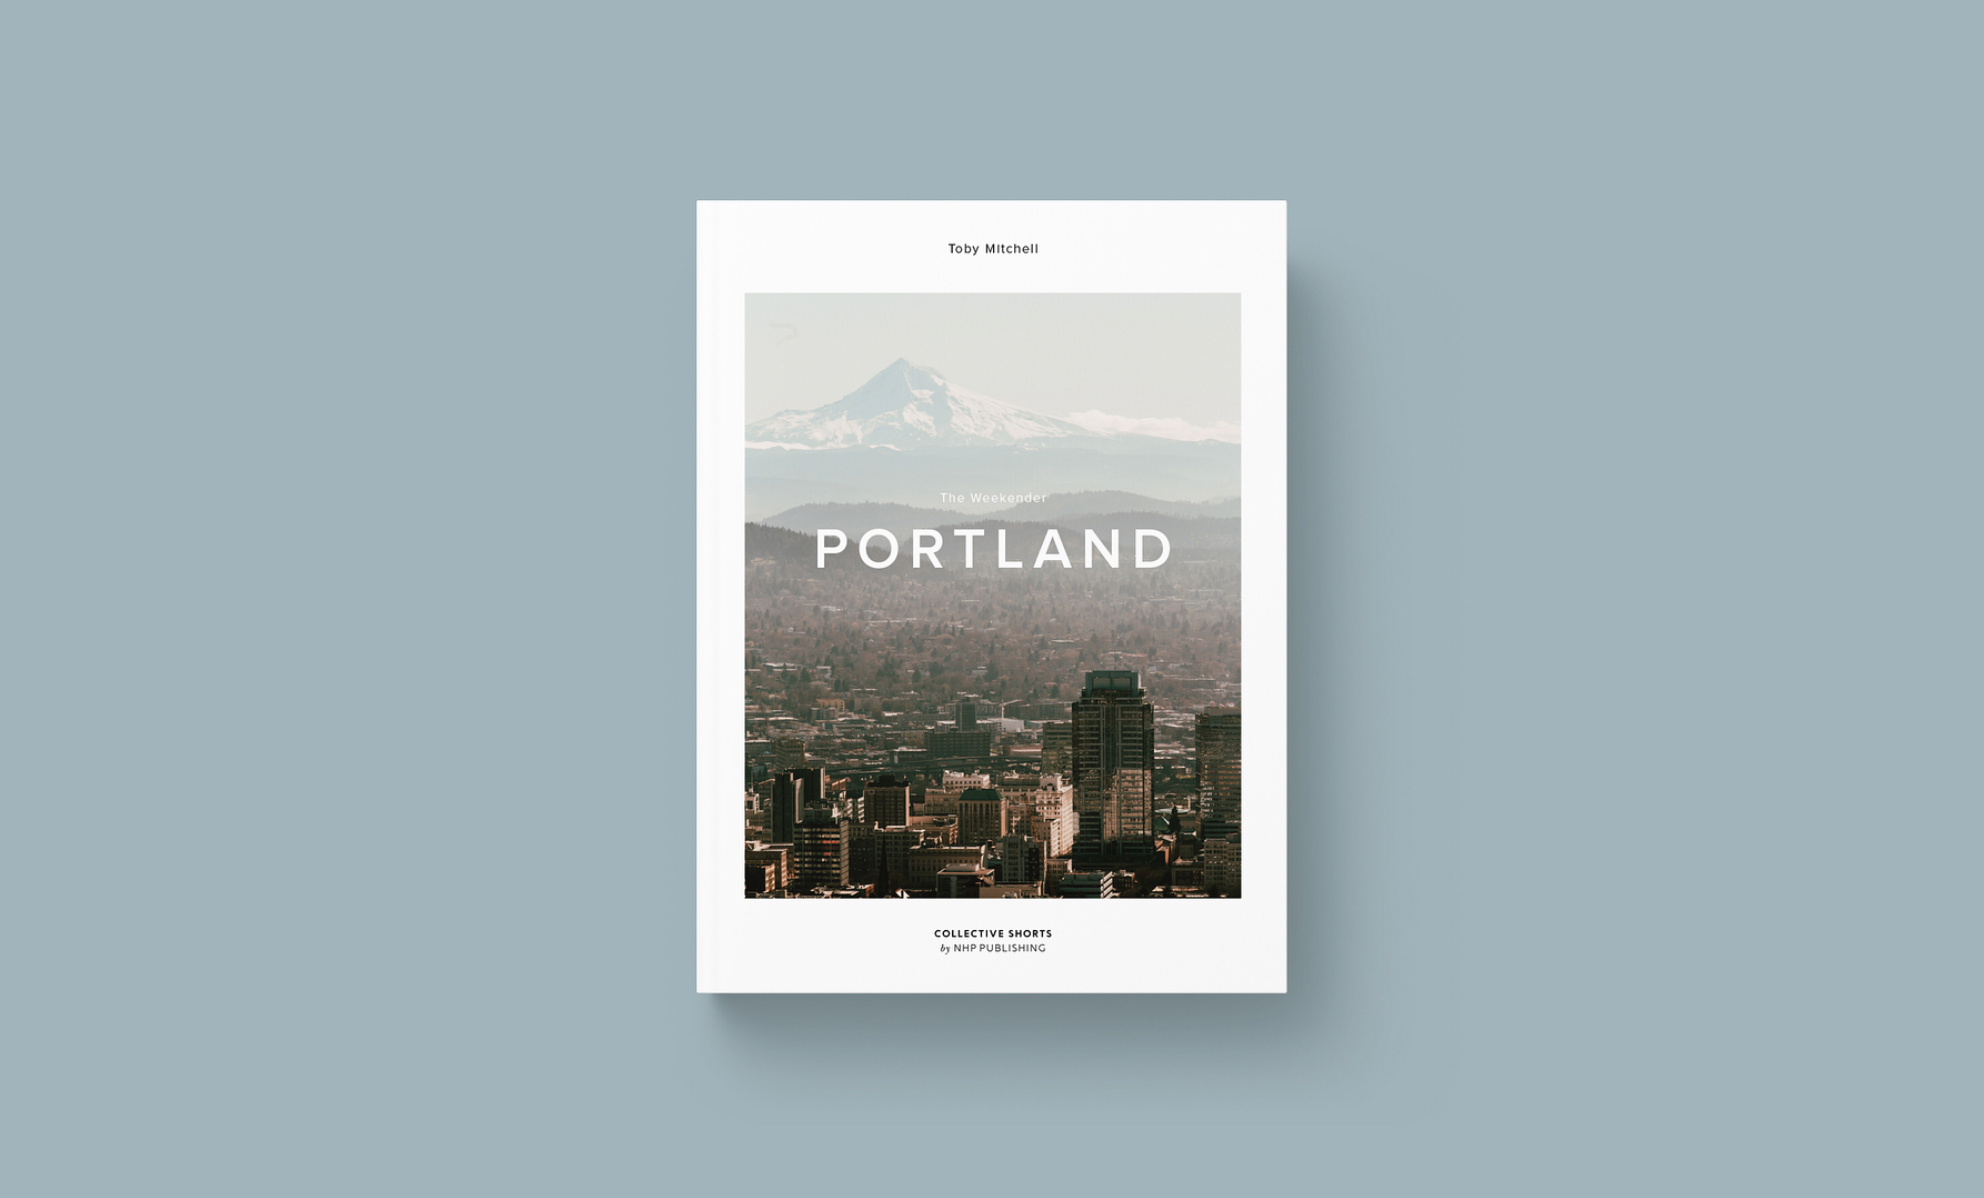 A visual narrative of a weekend spent in the American city of Portland - The second book in a series published by New Heroes & PioneersBUY TODAY